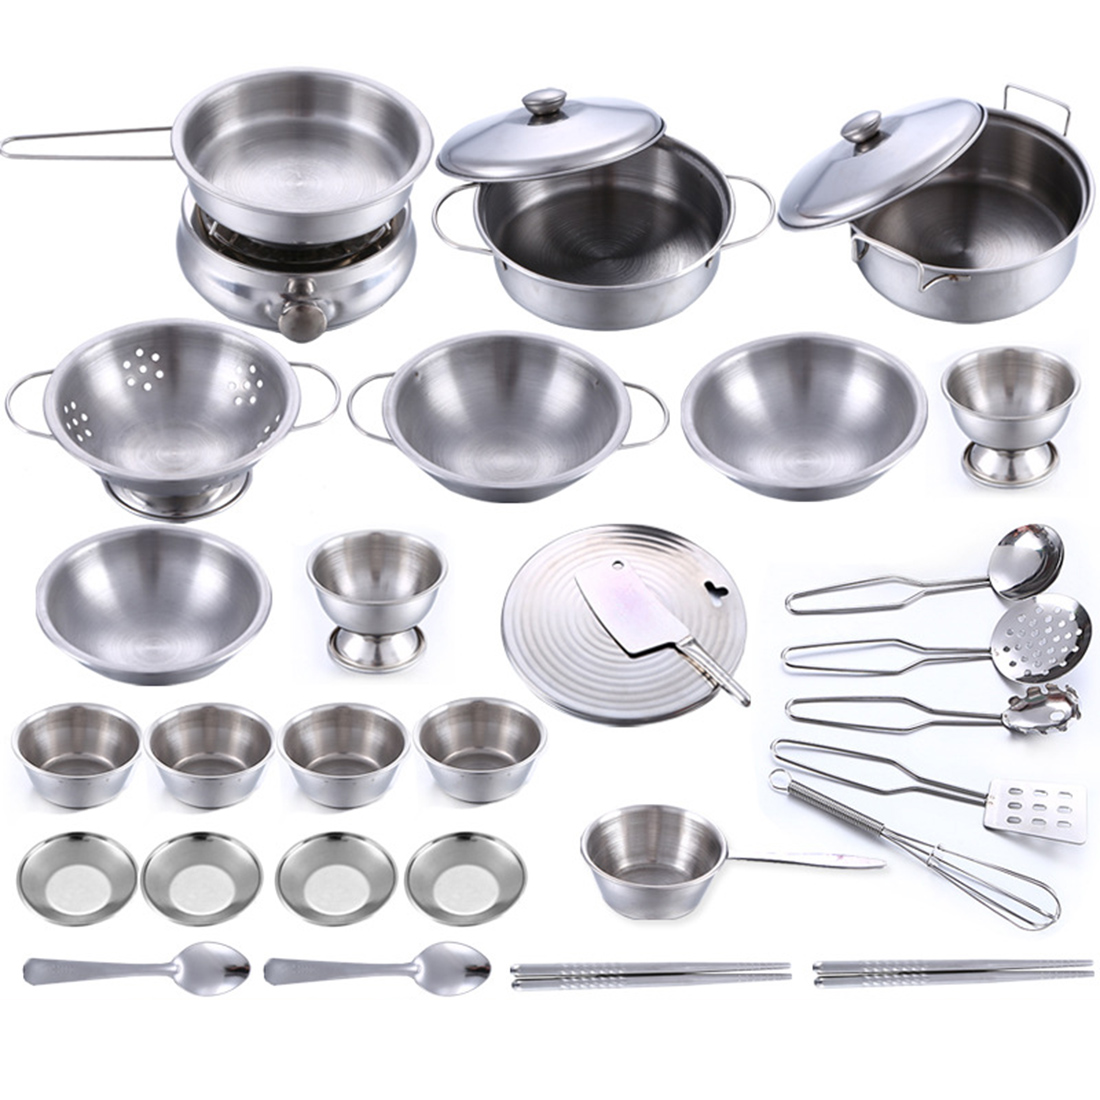 32Pcs/25pcs/16pcs Stainless Steel Kids House Kitchen Toy Cooking Cookware Children Pretend & Play Kitchen Playset - Silver